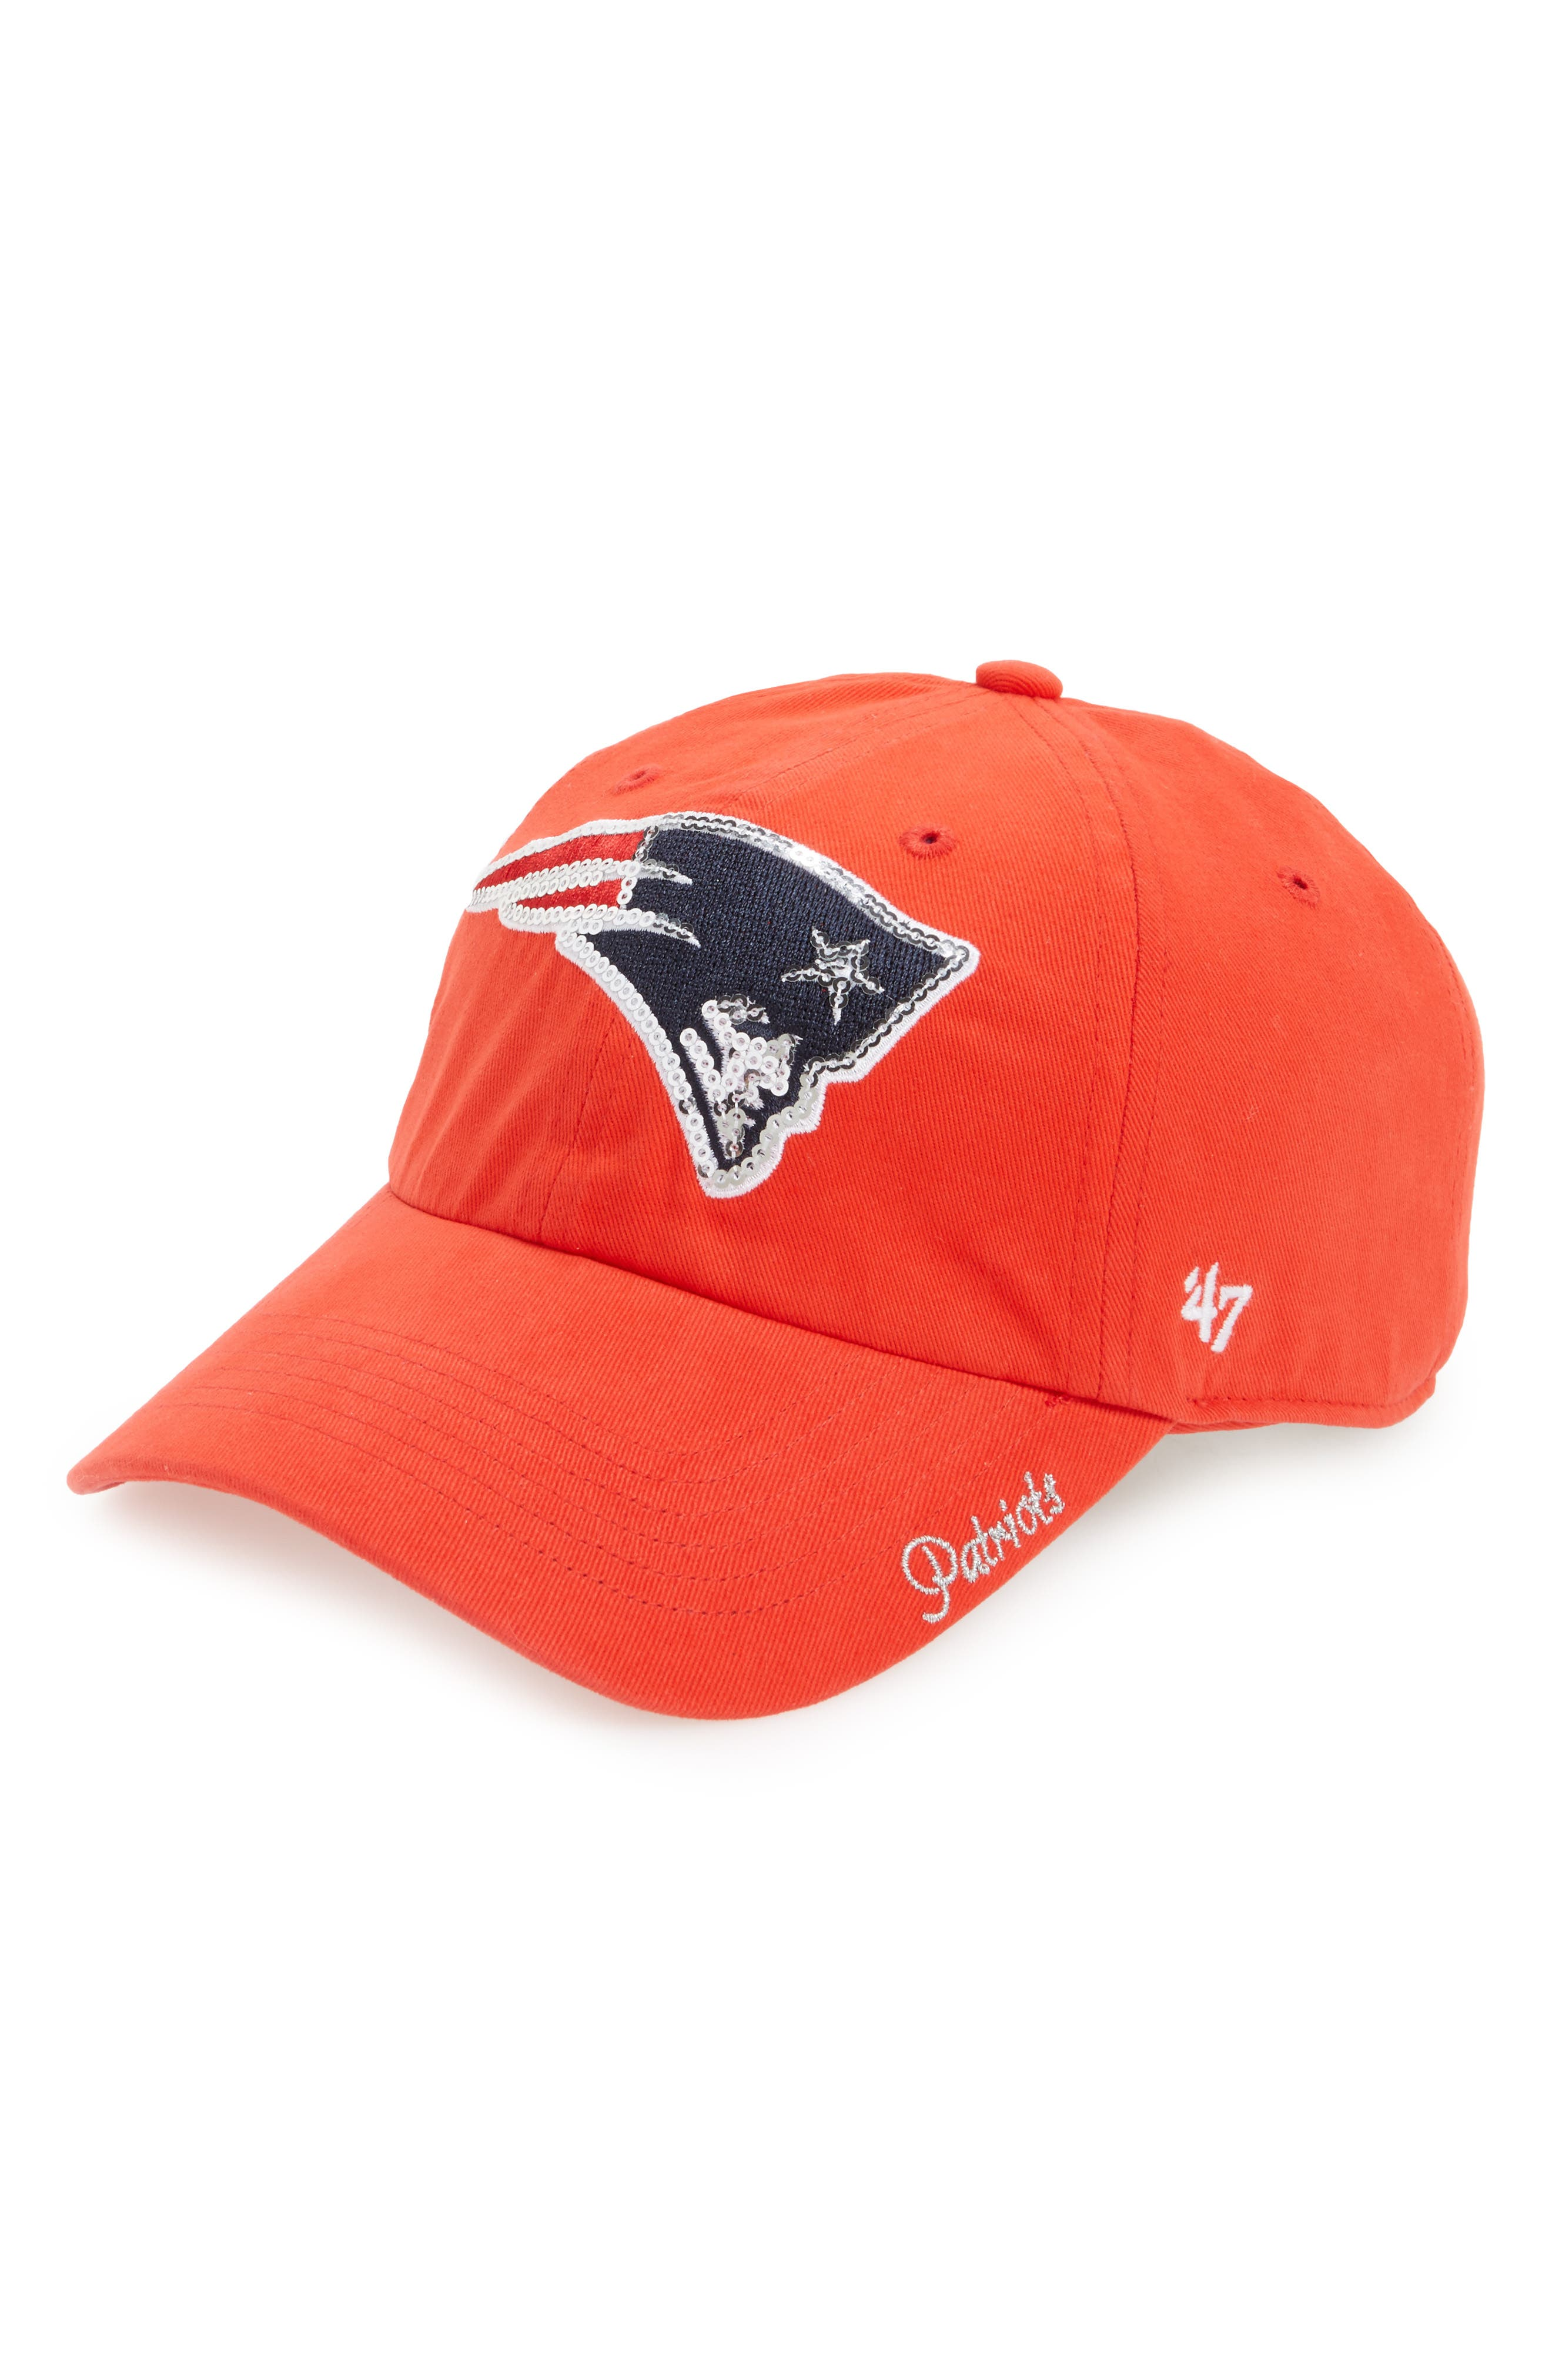 New England Patriots Sparkle Cap,                             Main thumbnail 1, color,                             600